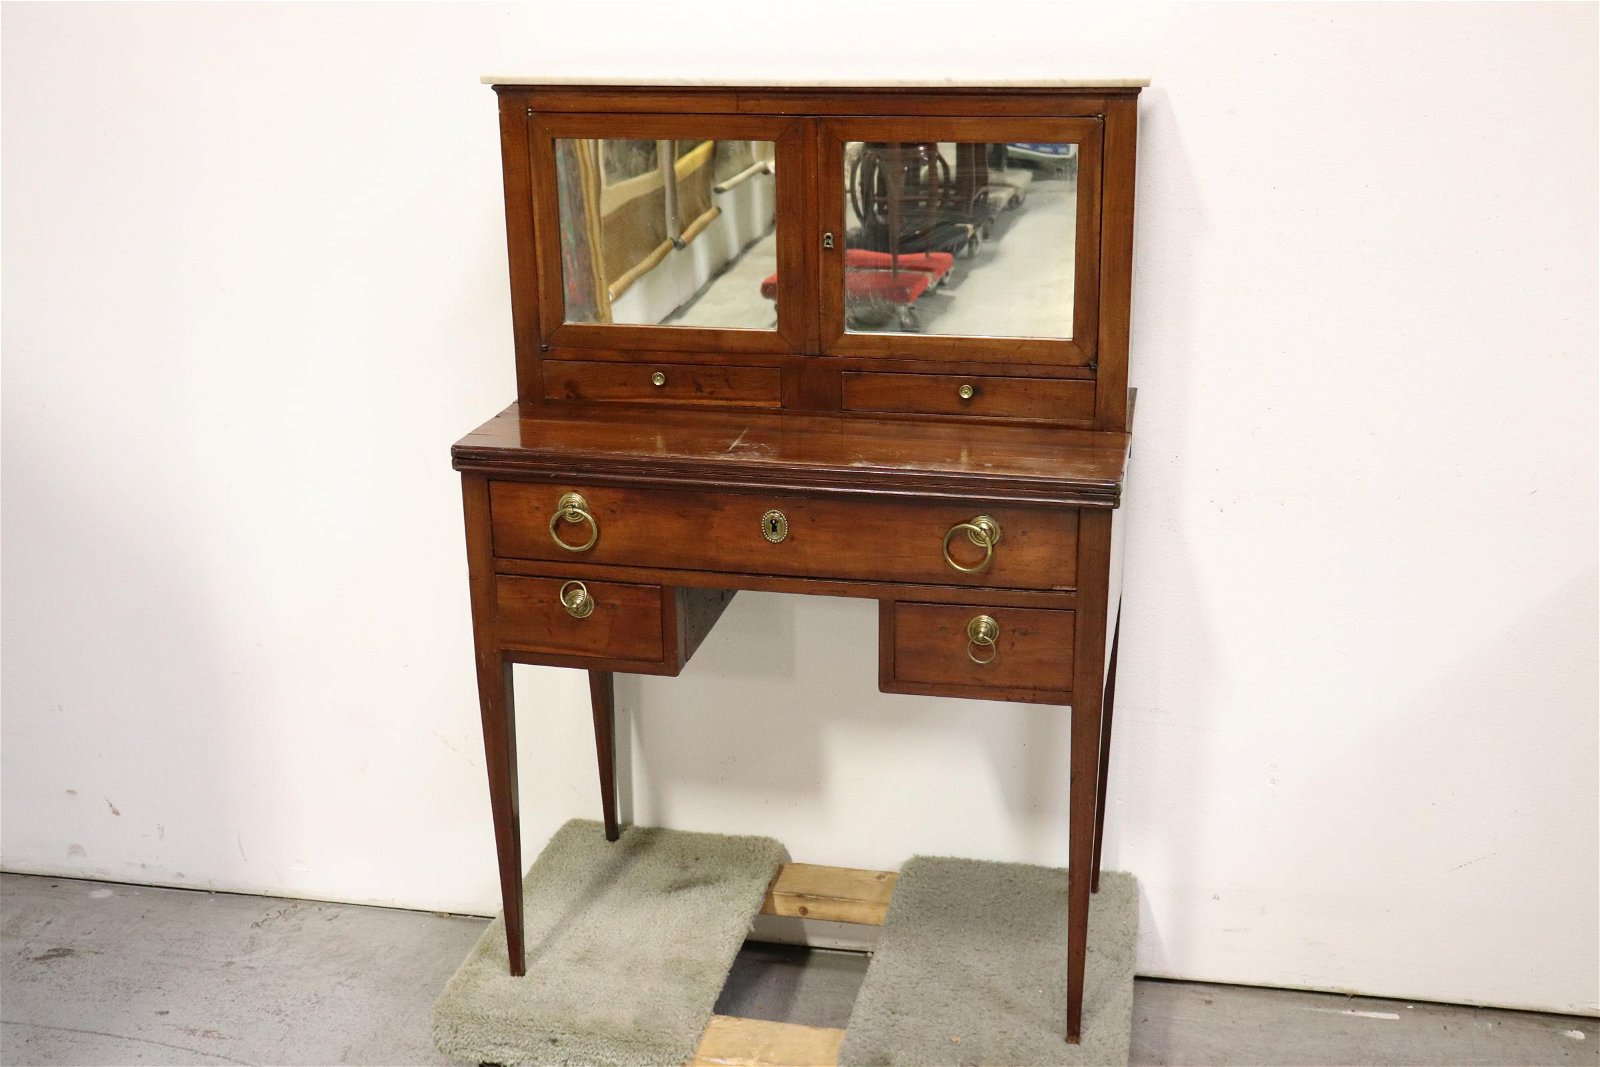 Antique French mahogany folding top desk/ cabinet